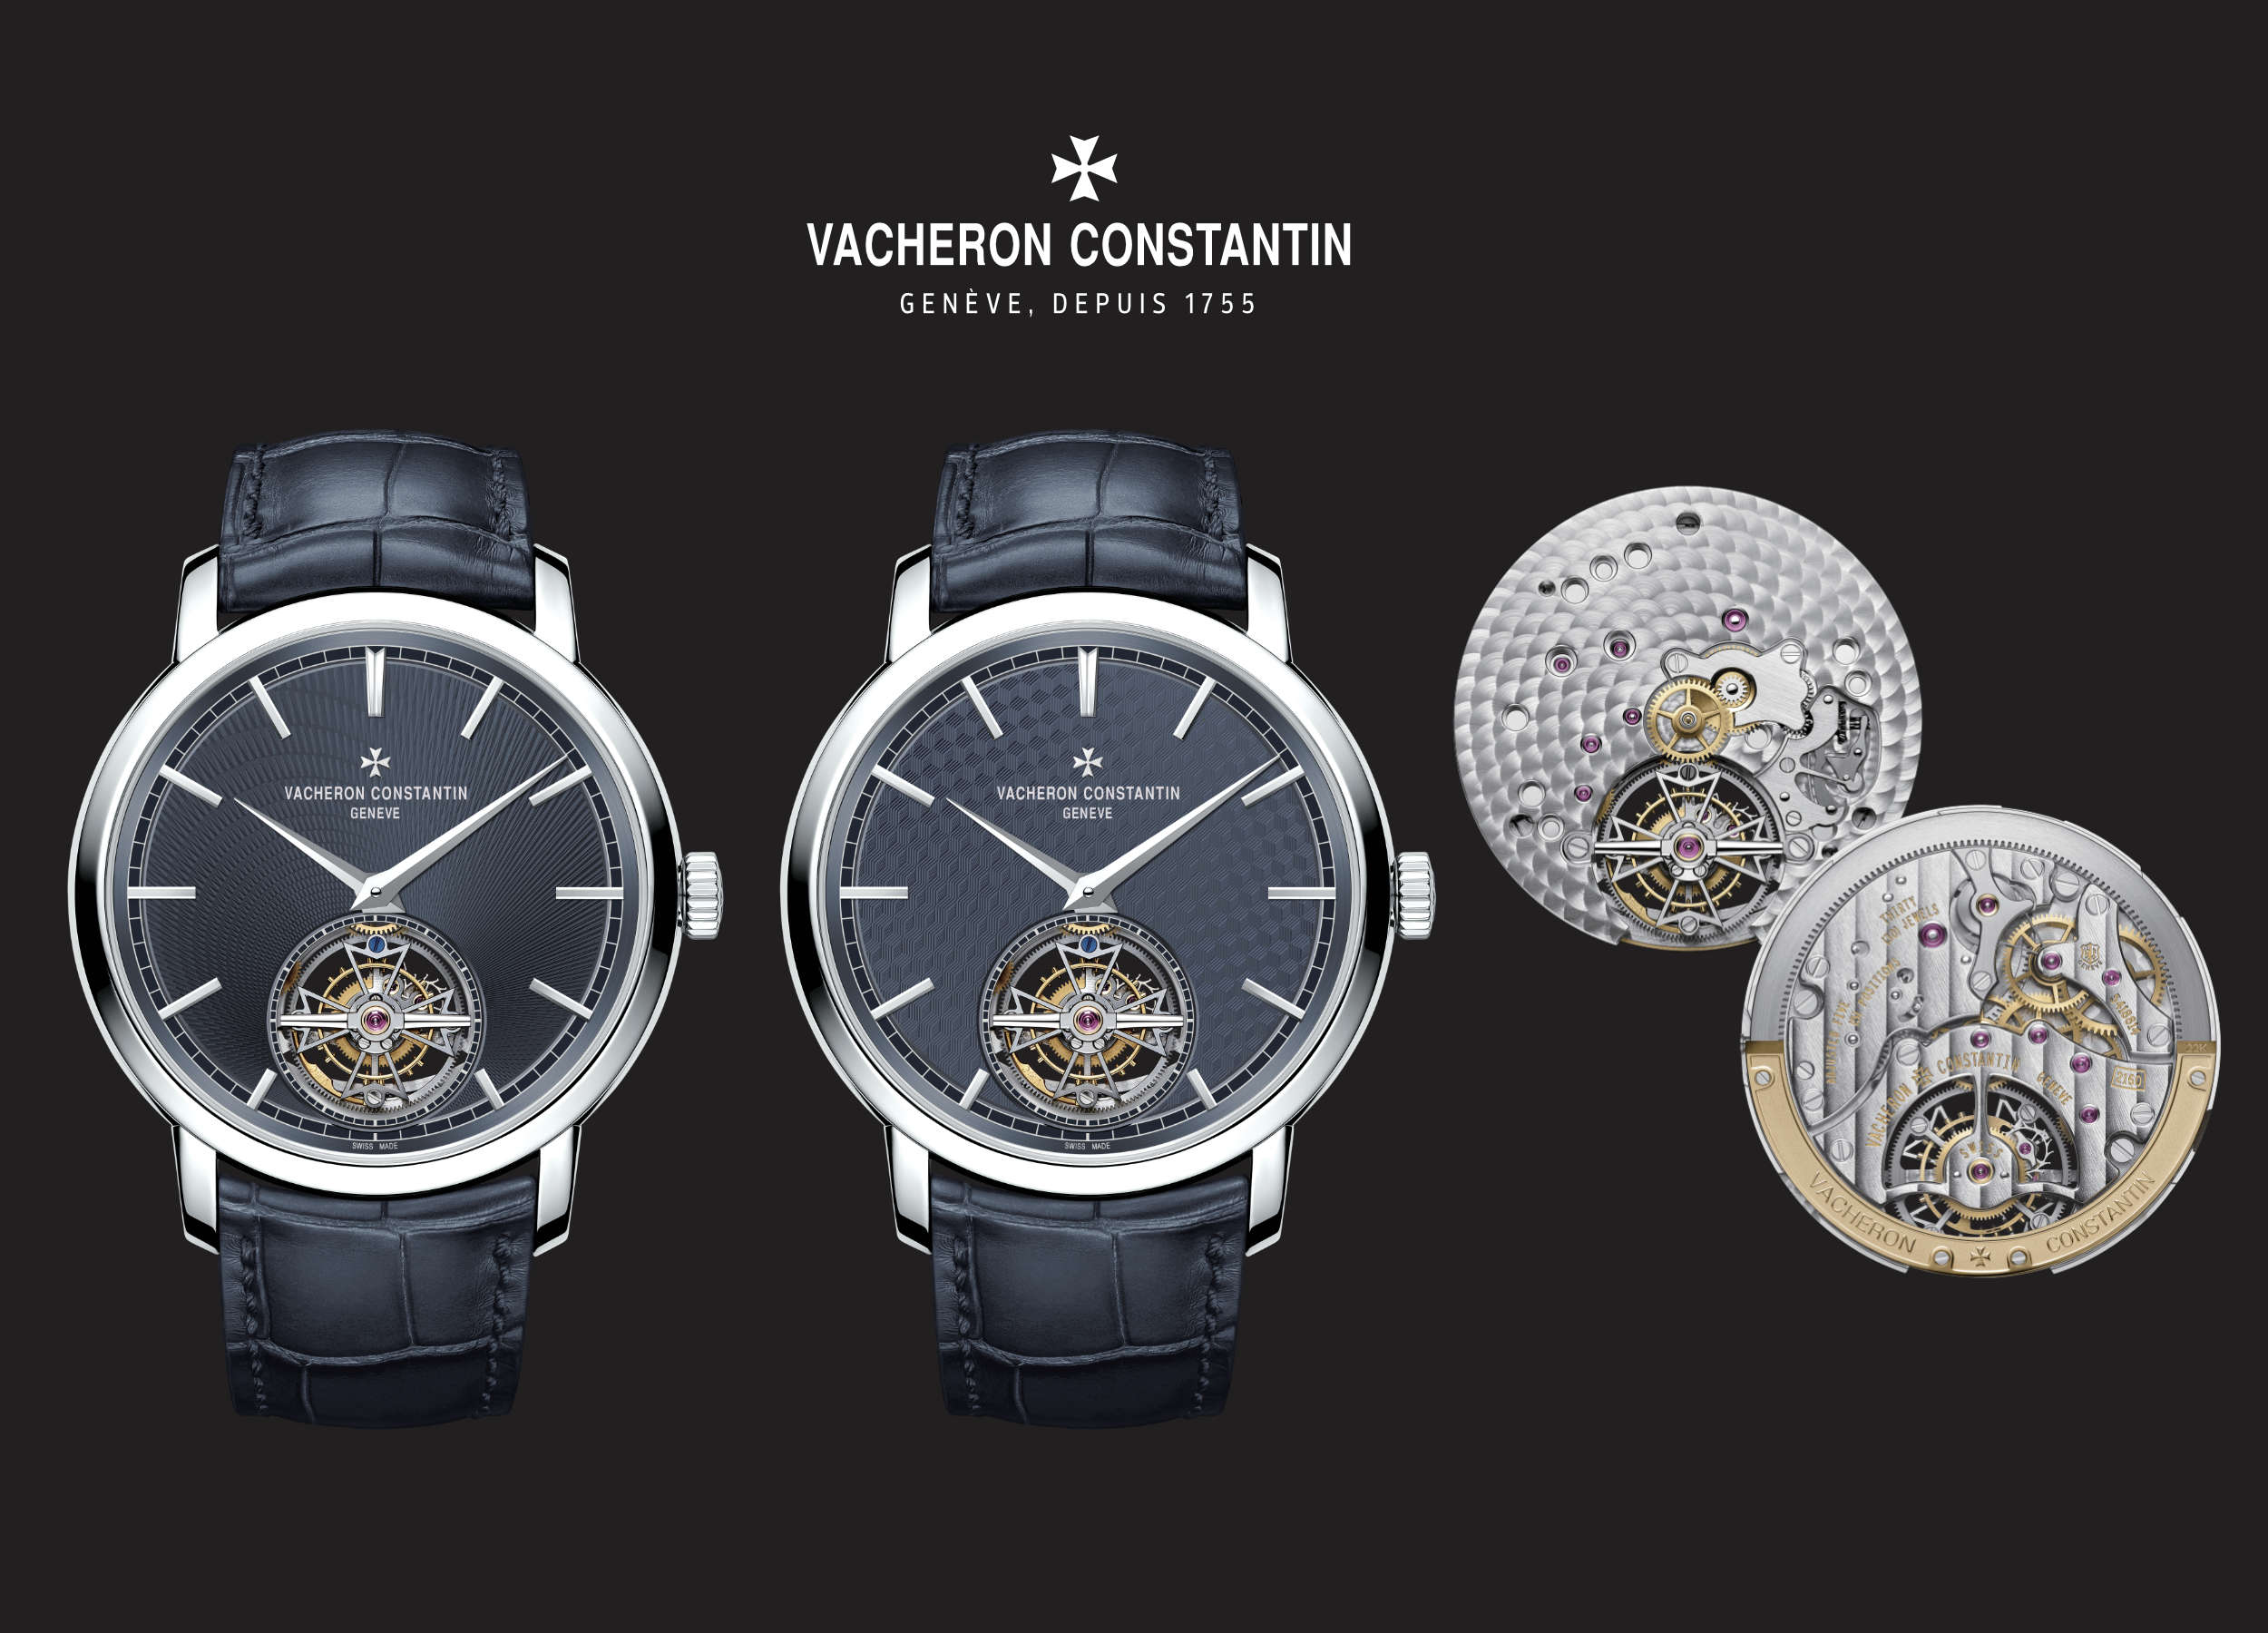 The Hour Glass x Vacheron Constantin Special Limited Edition